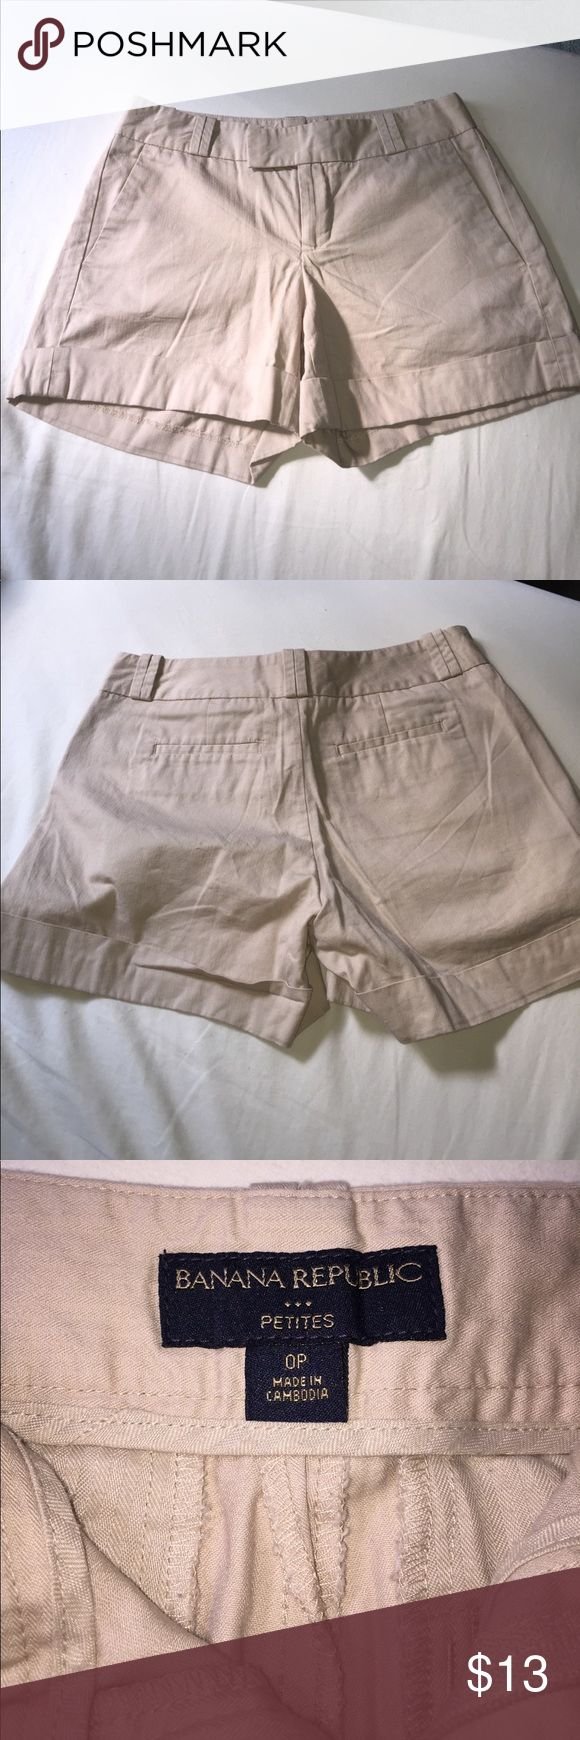 Banana Republic Shorts - Sz Petites 0 First and foremost, sorry for the wrinkles, but I have a cute pair of banana republic dress shorts. Size of waist is 13 inches laying flat. Total length is 12 inches and inseam length is 4 inches.  There are no stains or holes. In great condition. Just needs to be ironed (lol).   Total of two pockets in the front and two pockets on the back and can be worn with a belt. Please feel free to ask any questions and thanks for checking out my closet. Banana…